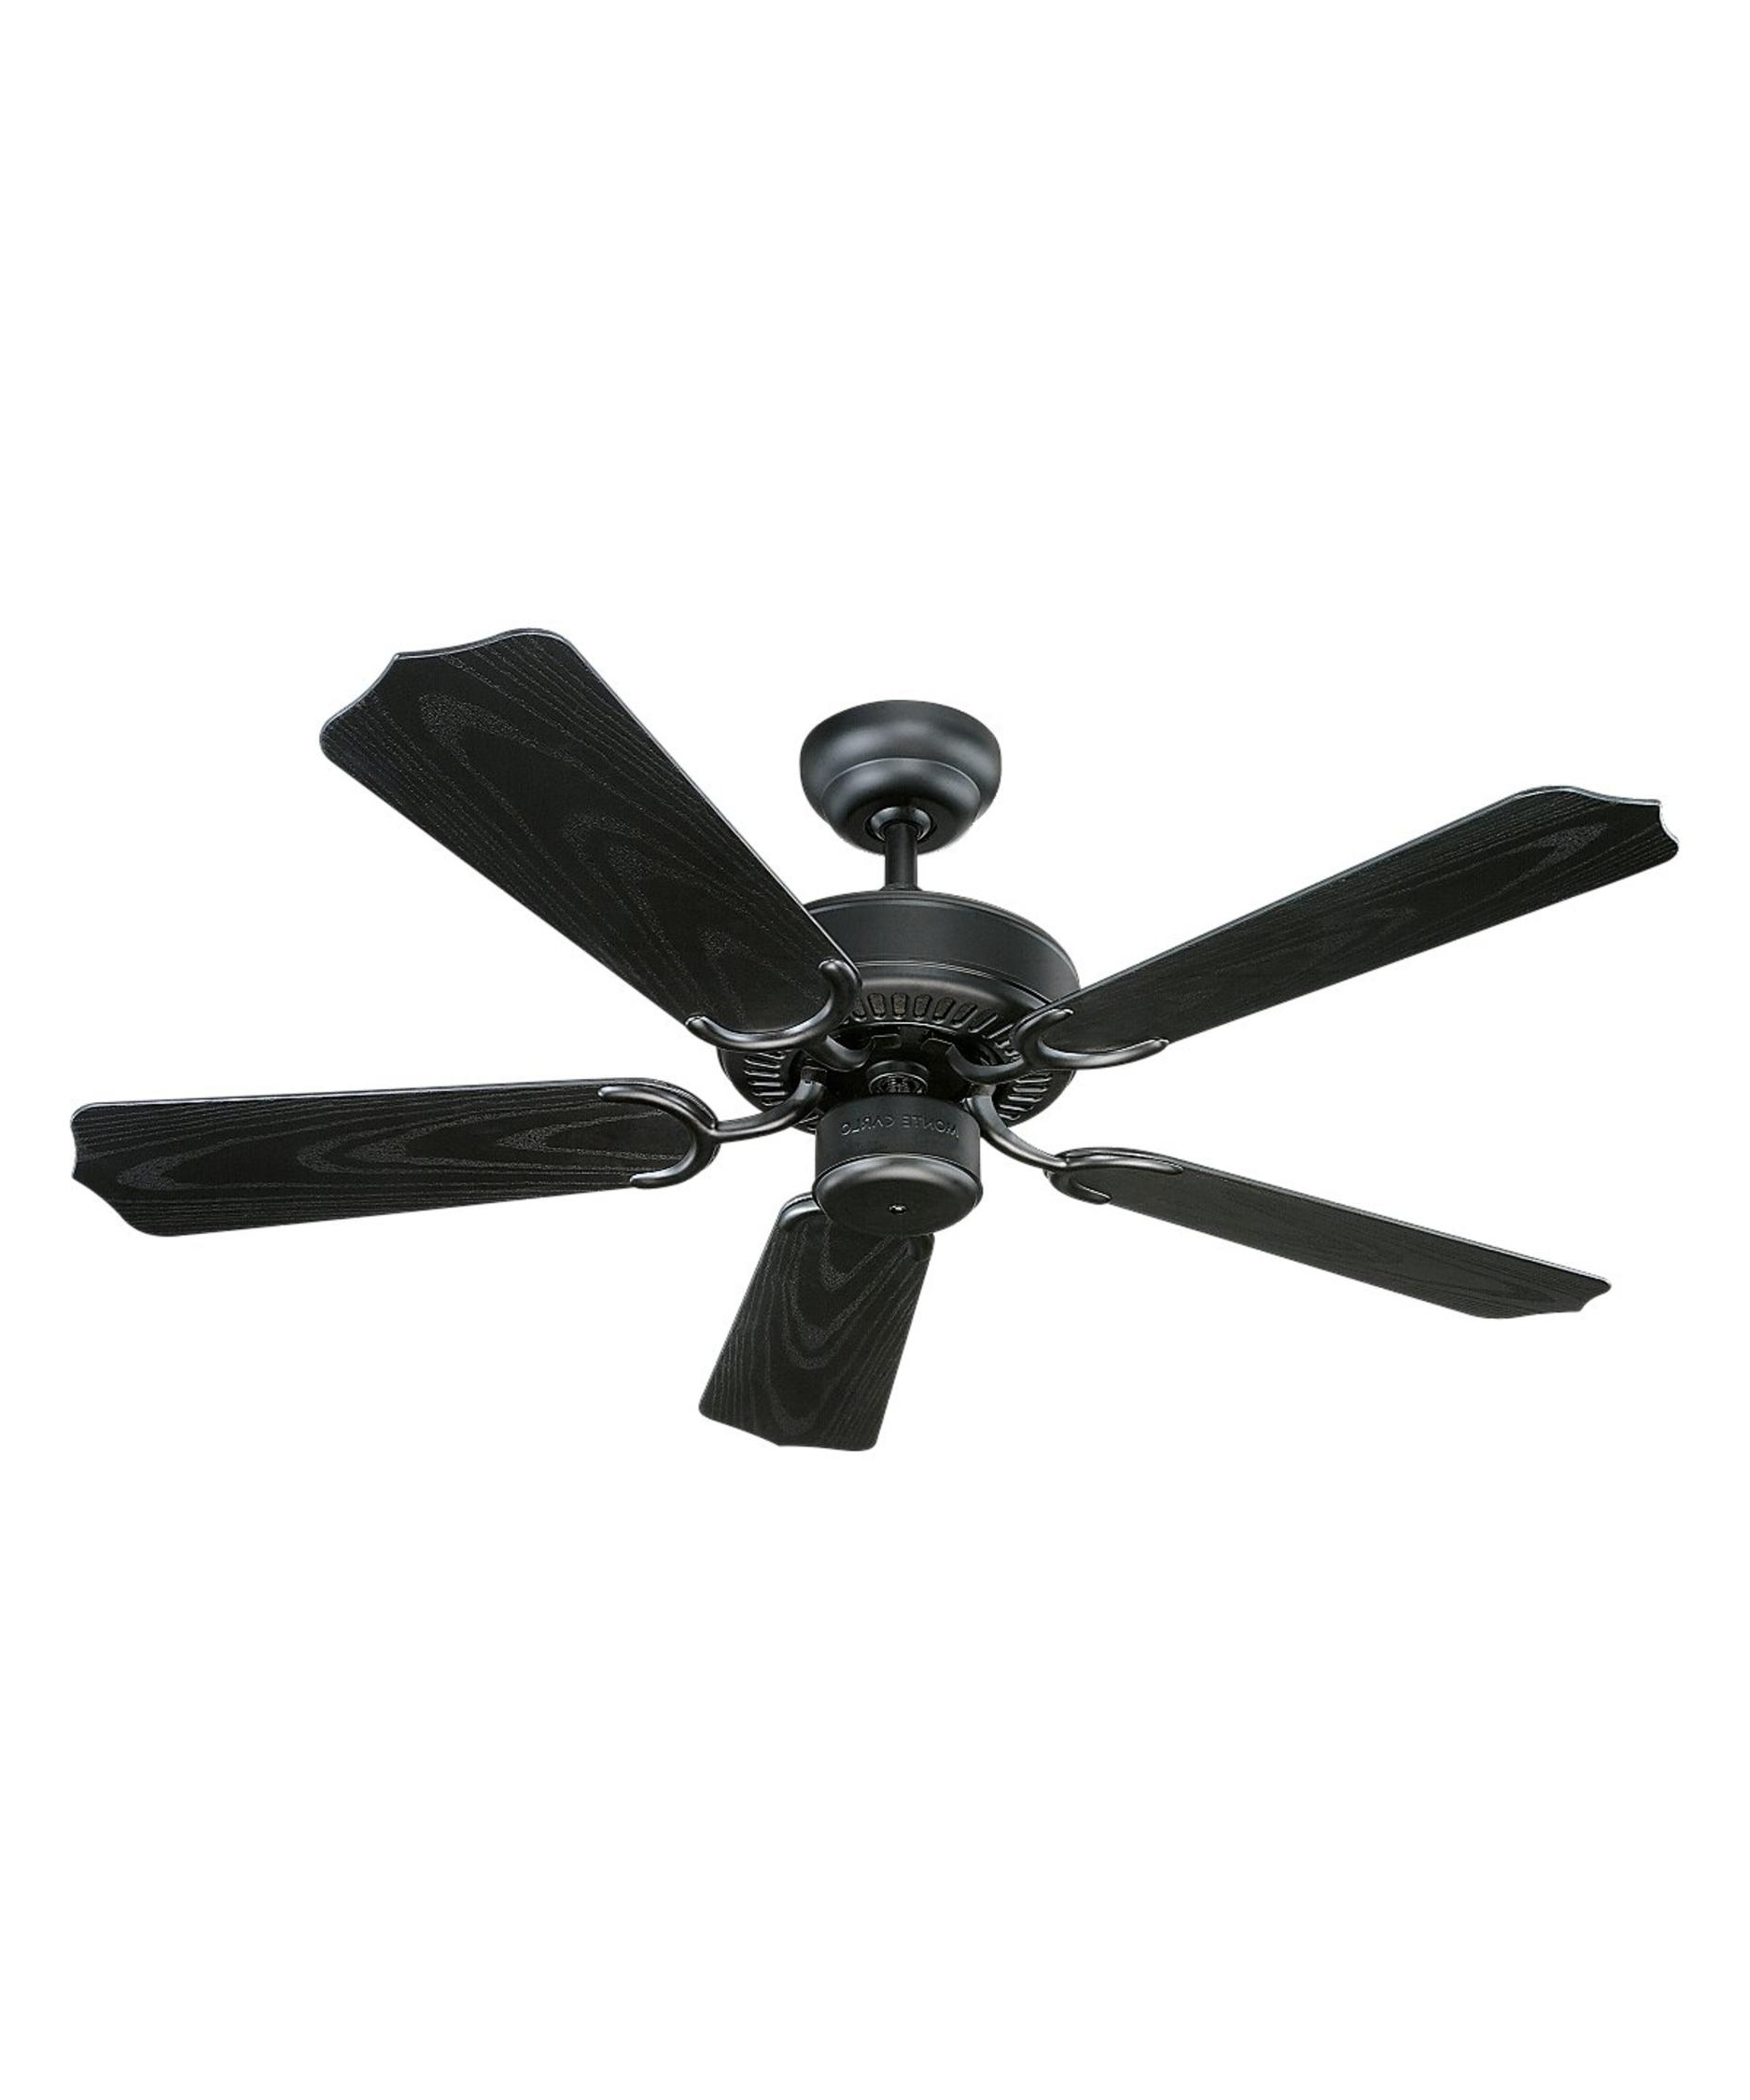 Most Popular Monte Carlo 5wf42 Weatherford Ii 42 Inch 5 Blade Ceiling Fan Inside 42 Inch Outdoor Ceiling Fans (View 8 of 20)